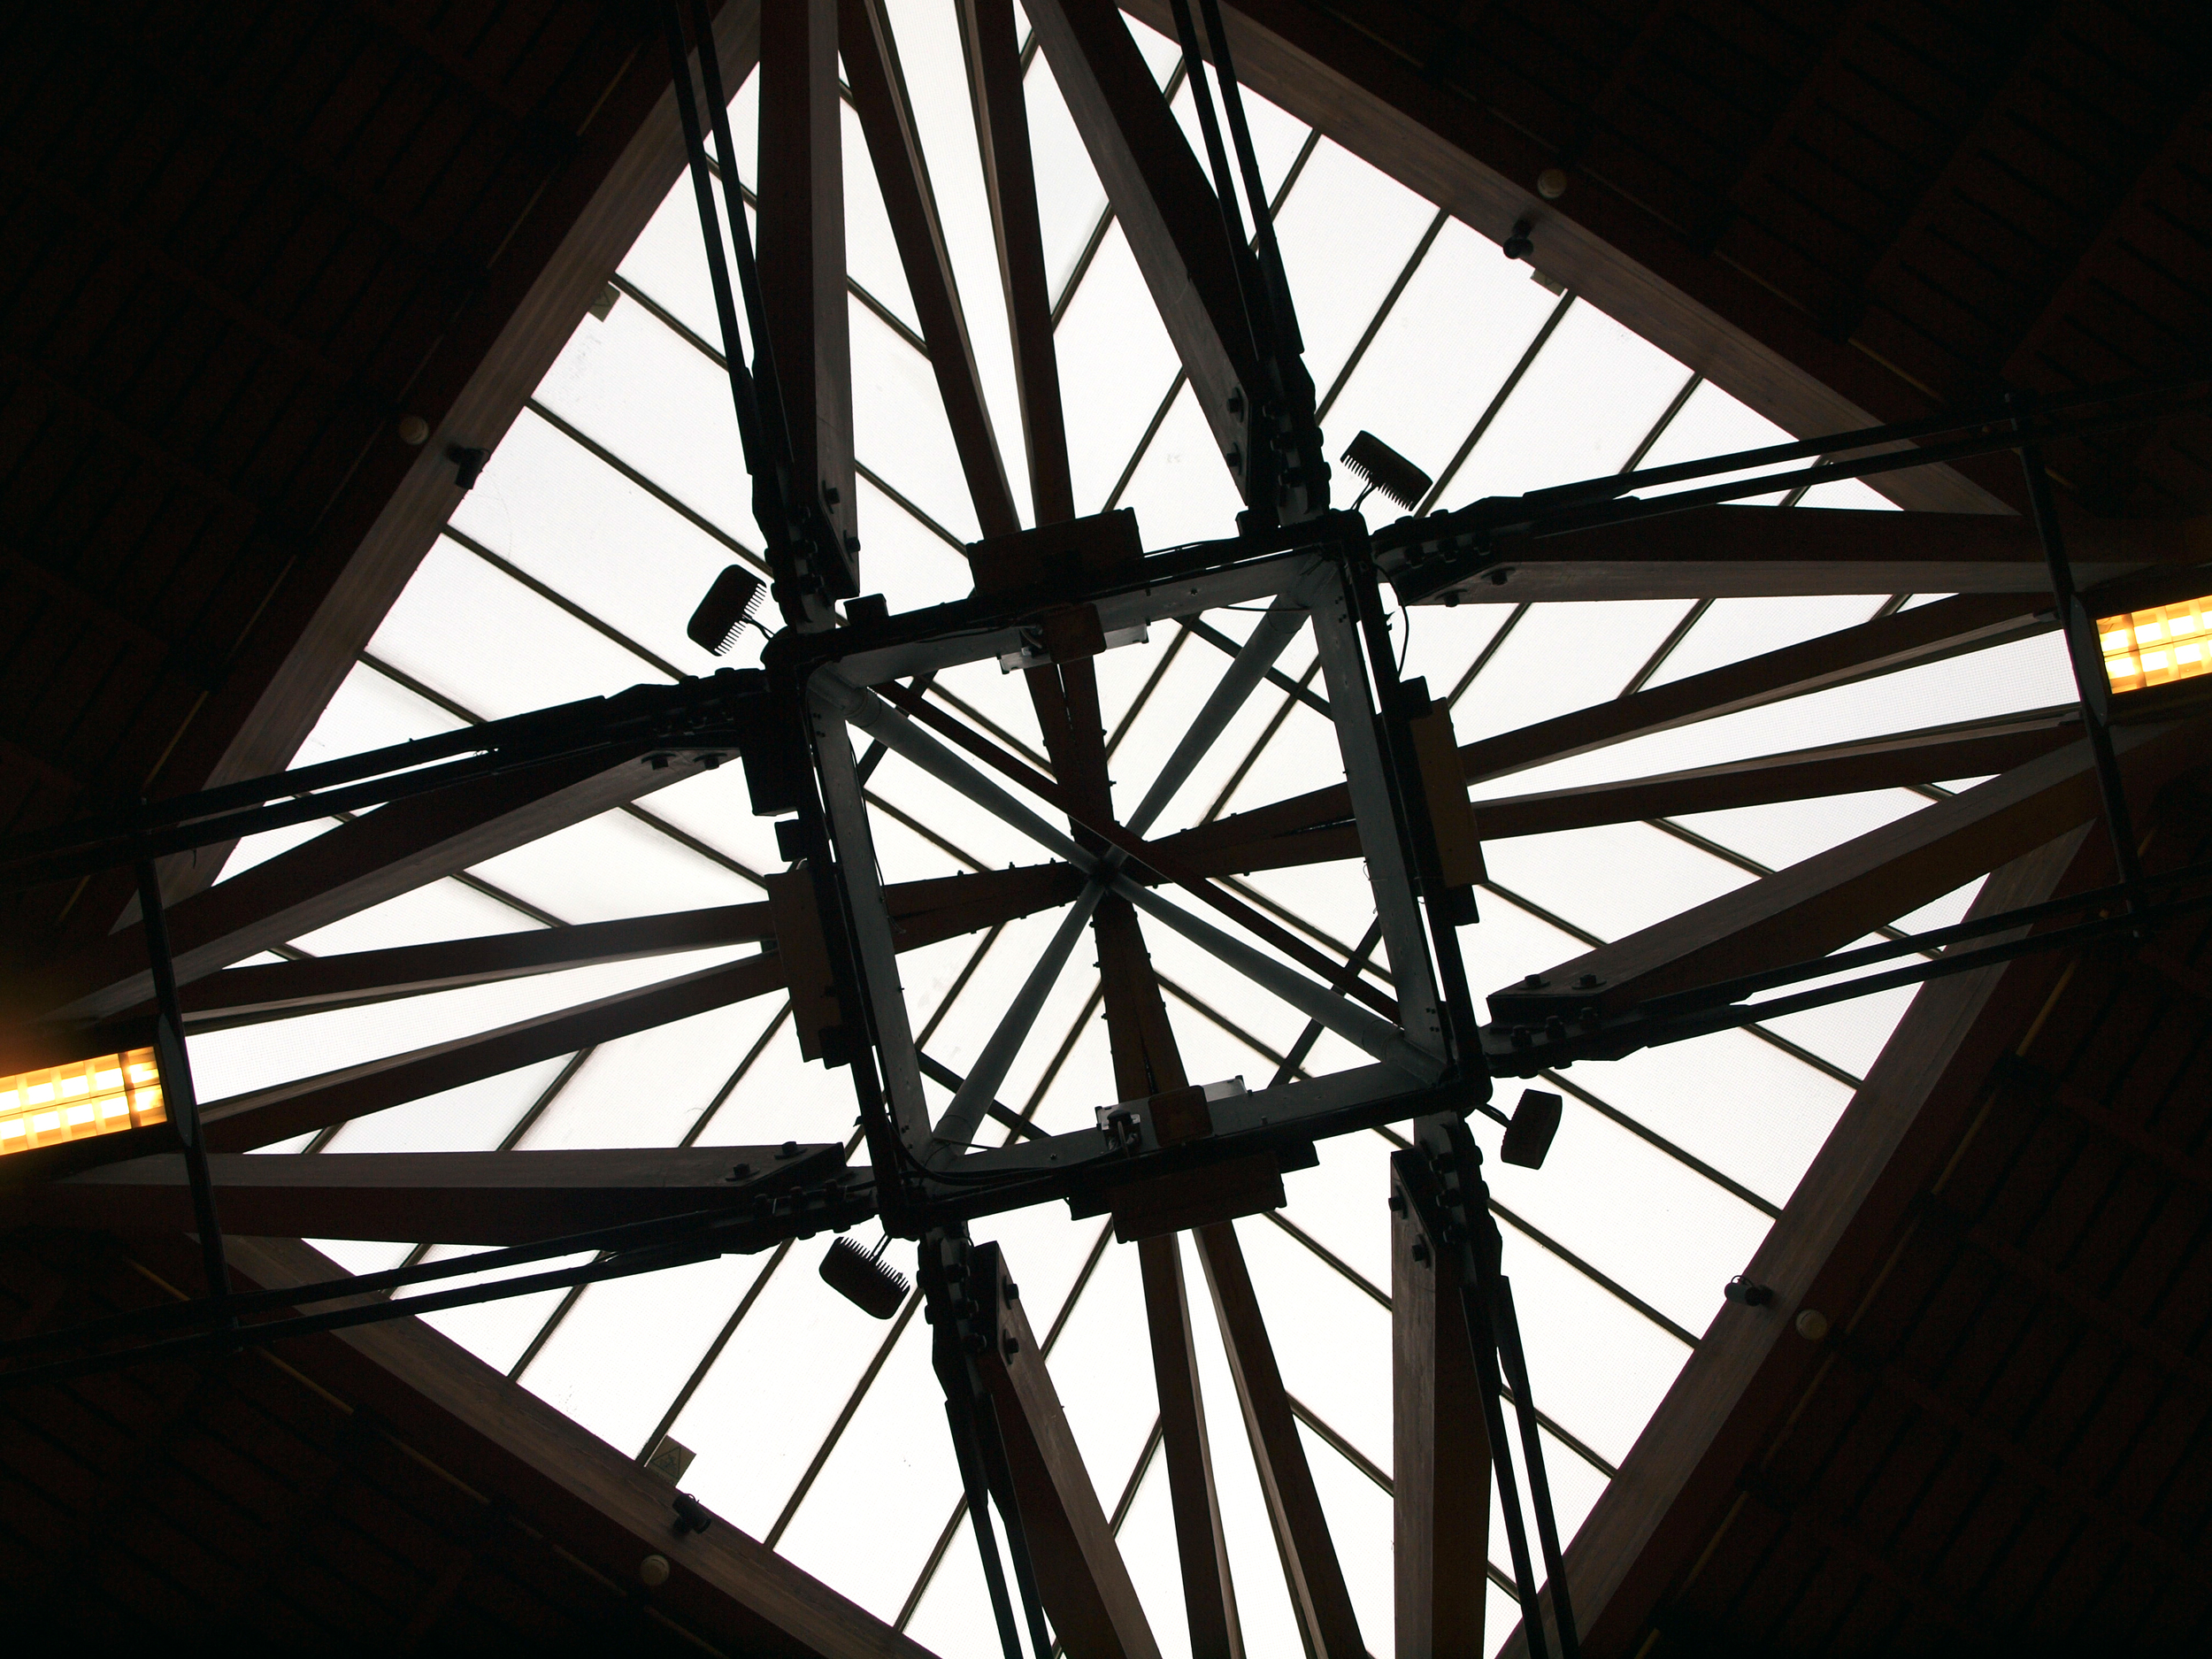 Sky light from the reflected ceiling